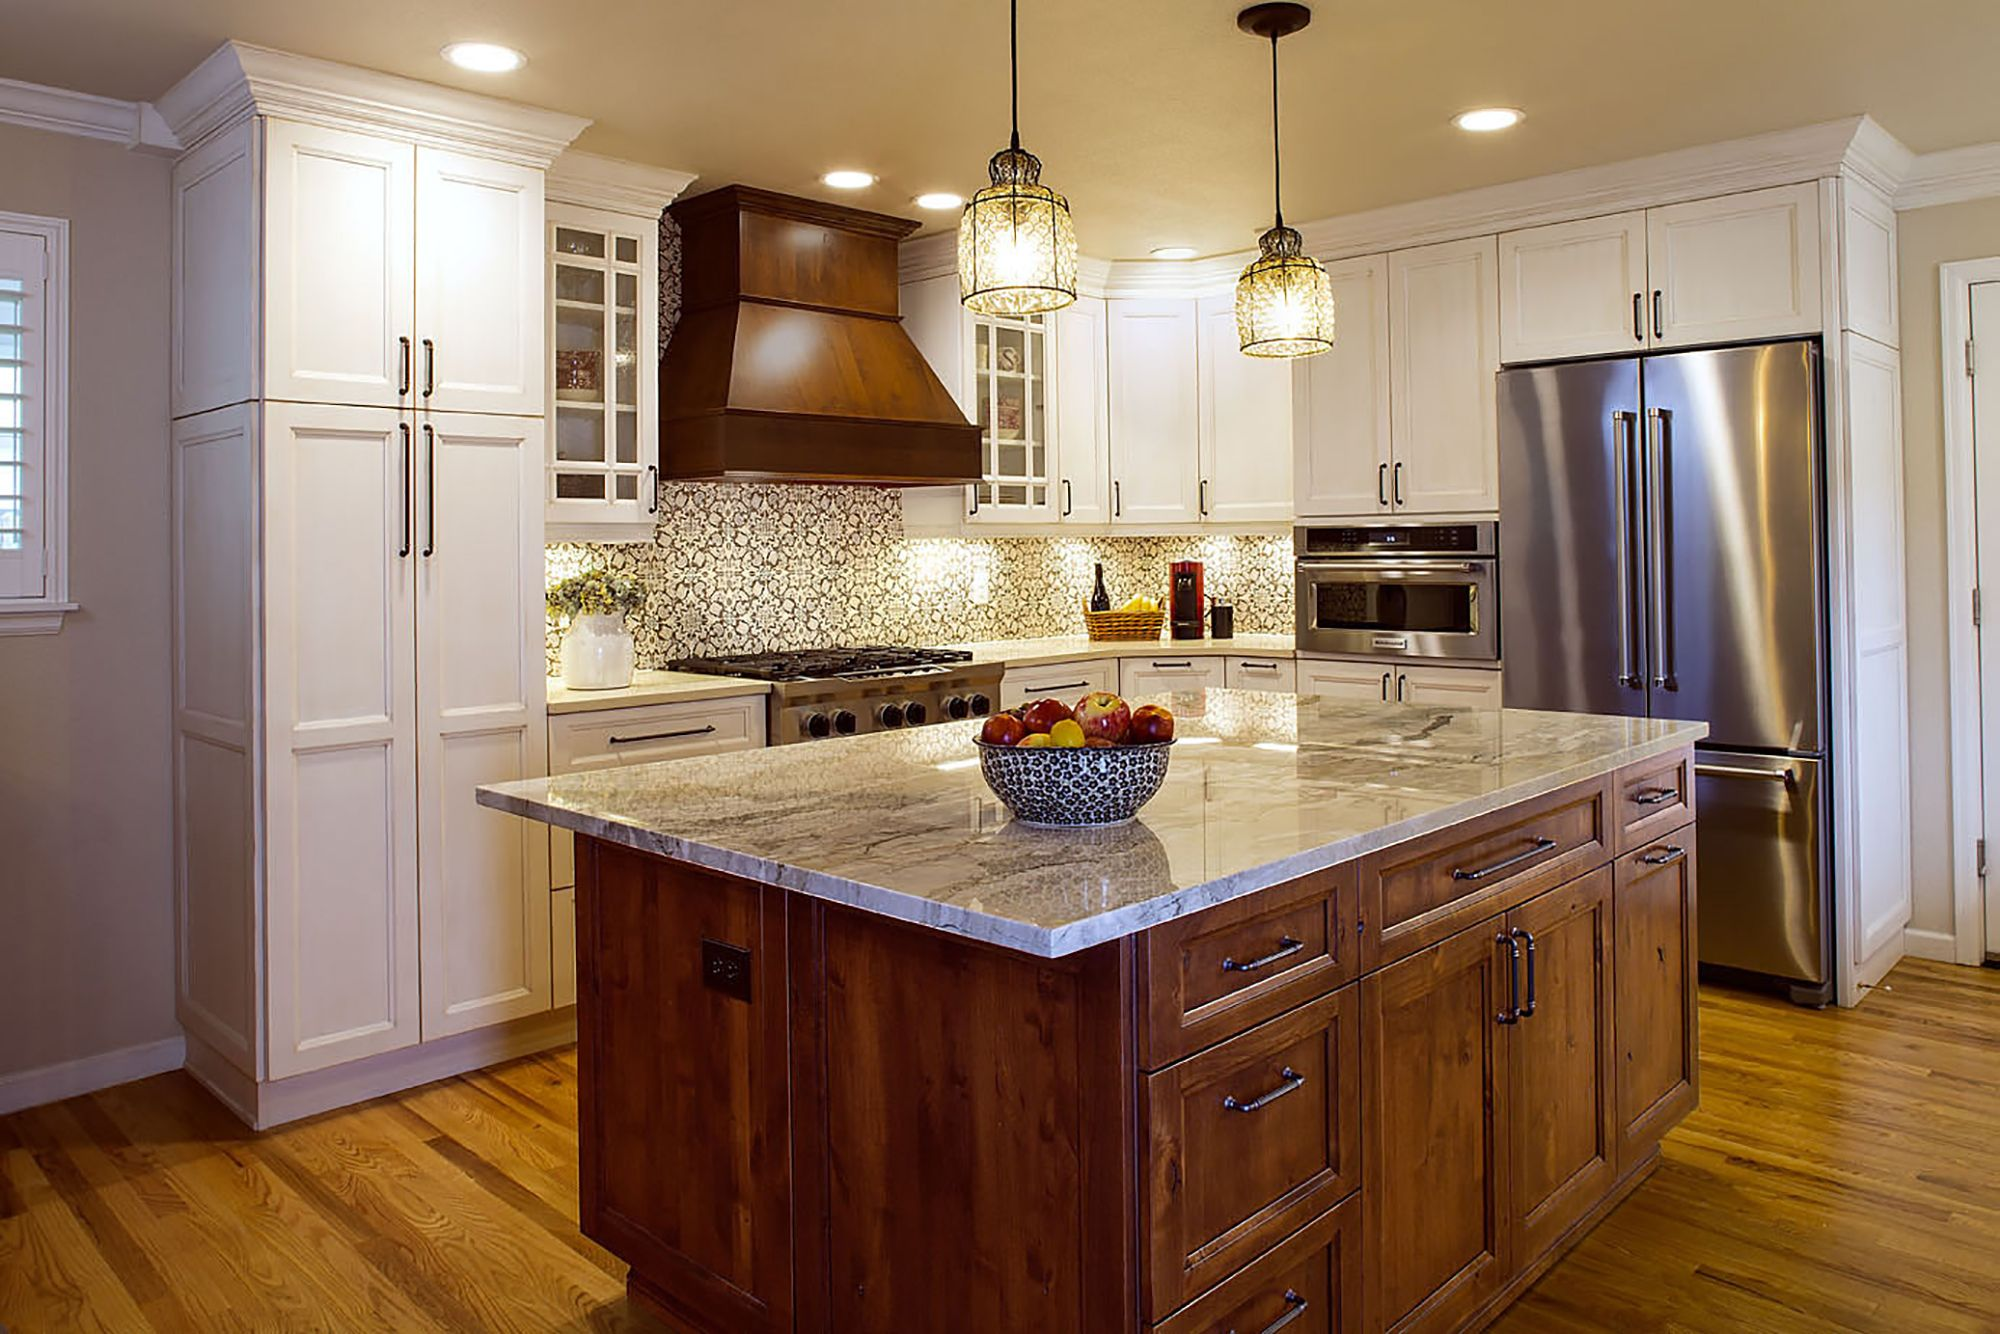 Kitchens | Triple Crown Cabinetry & Millwork